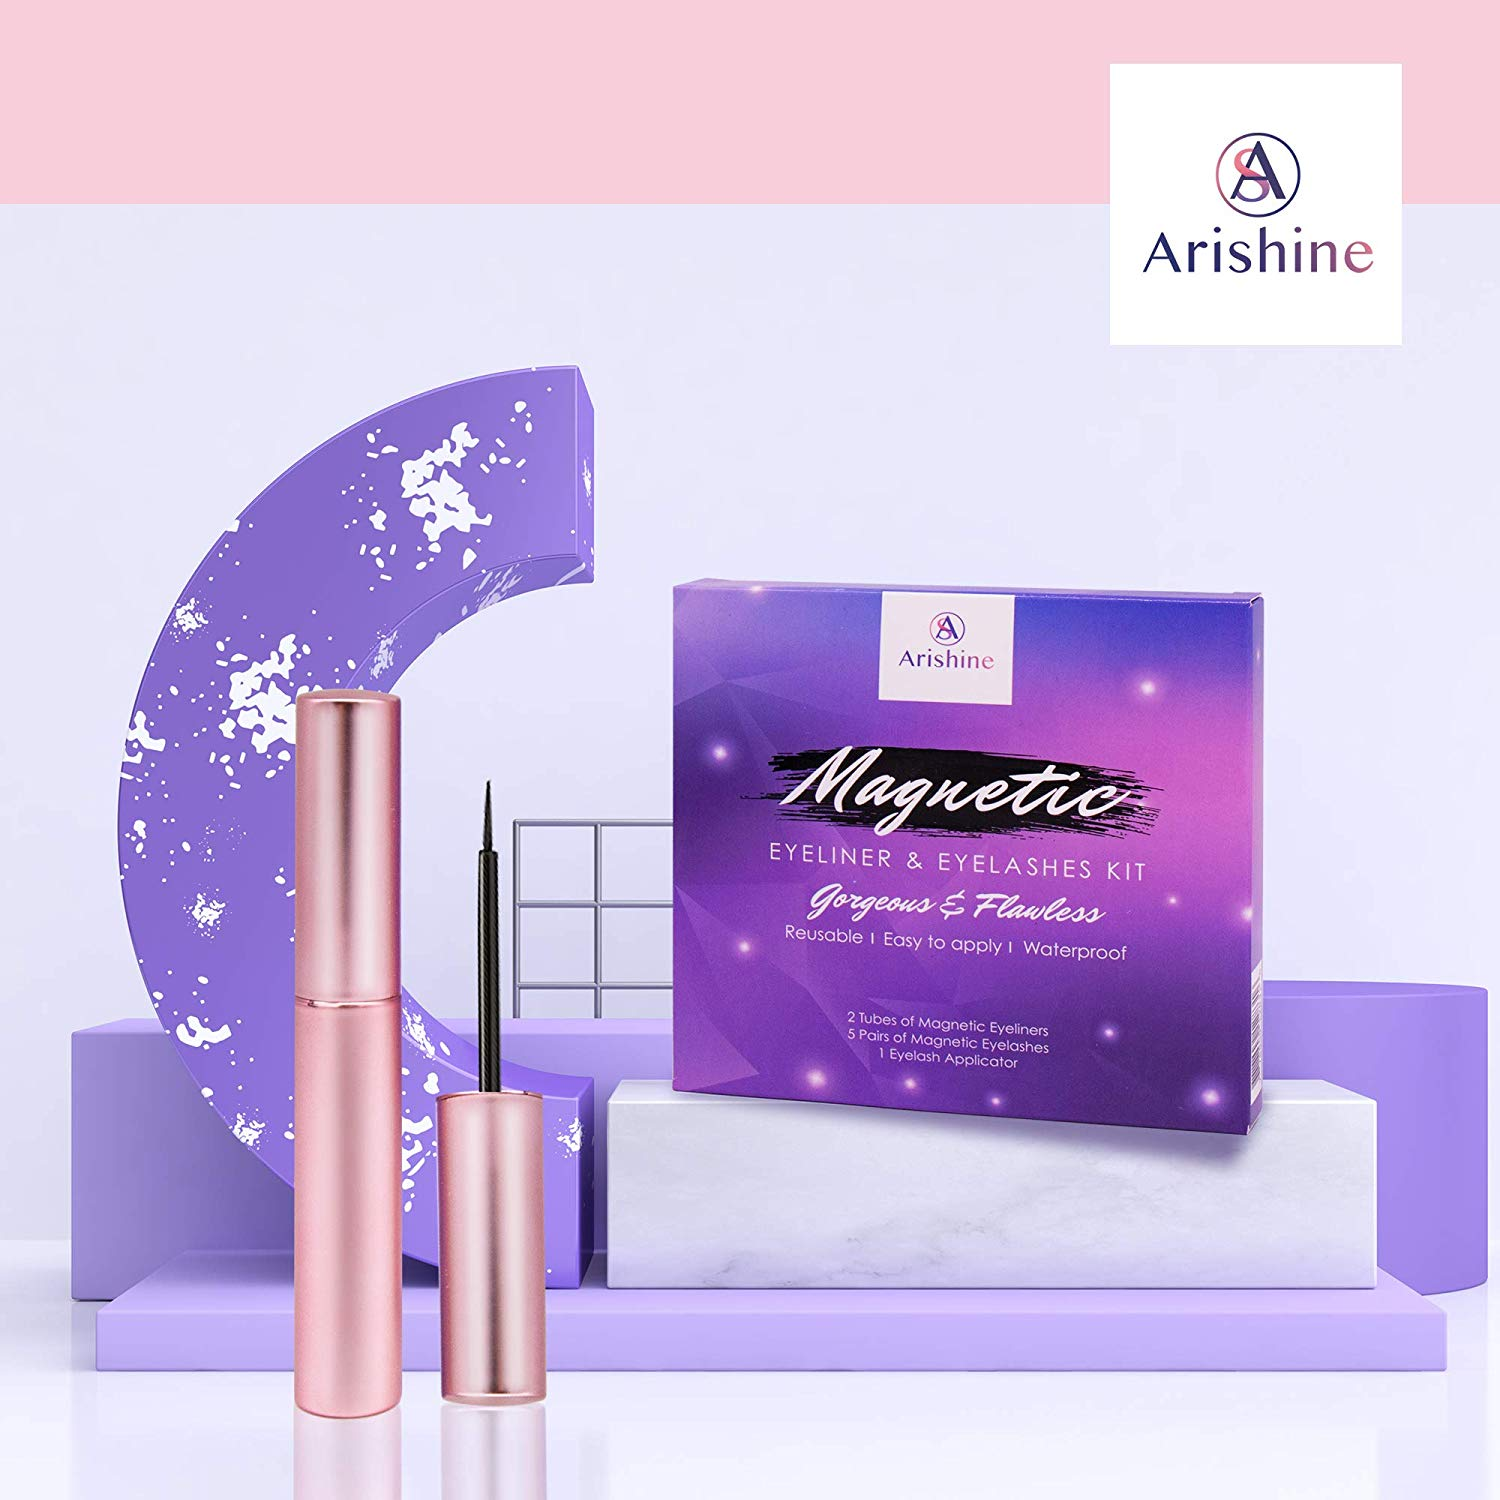 Arishine Magnetic Eyeliner and Lashes Kit - Makeup Accessories Online